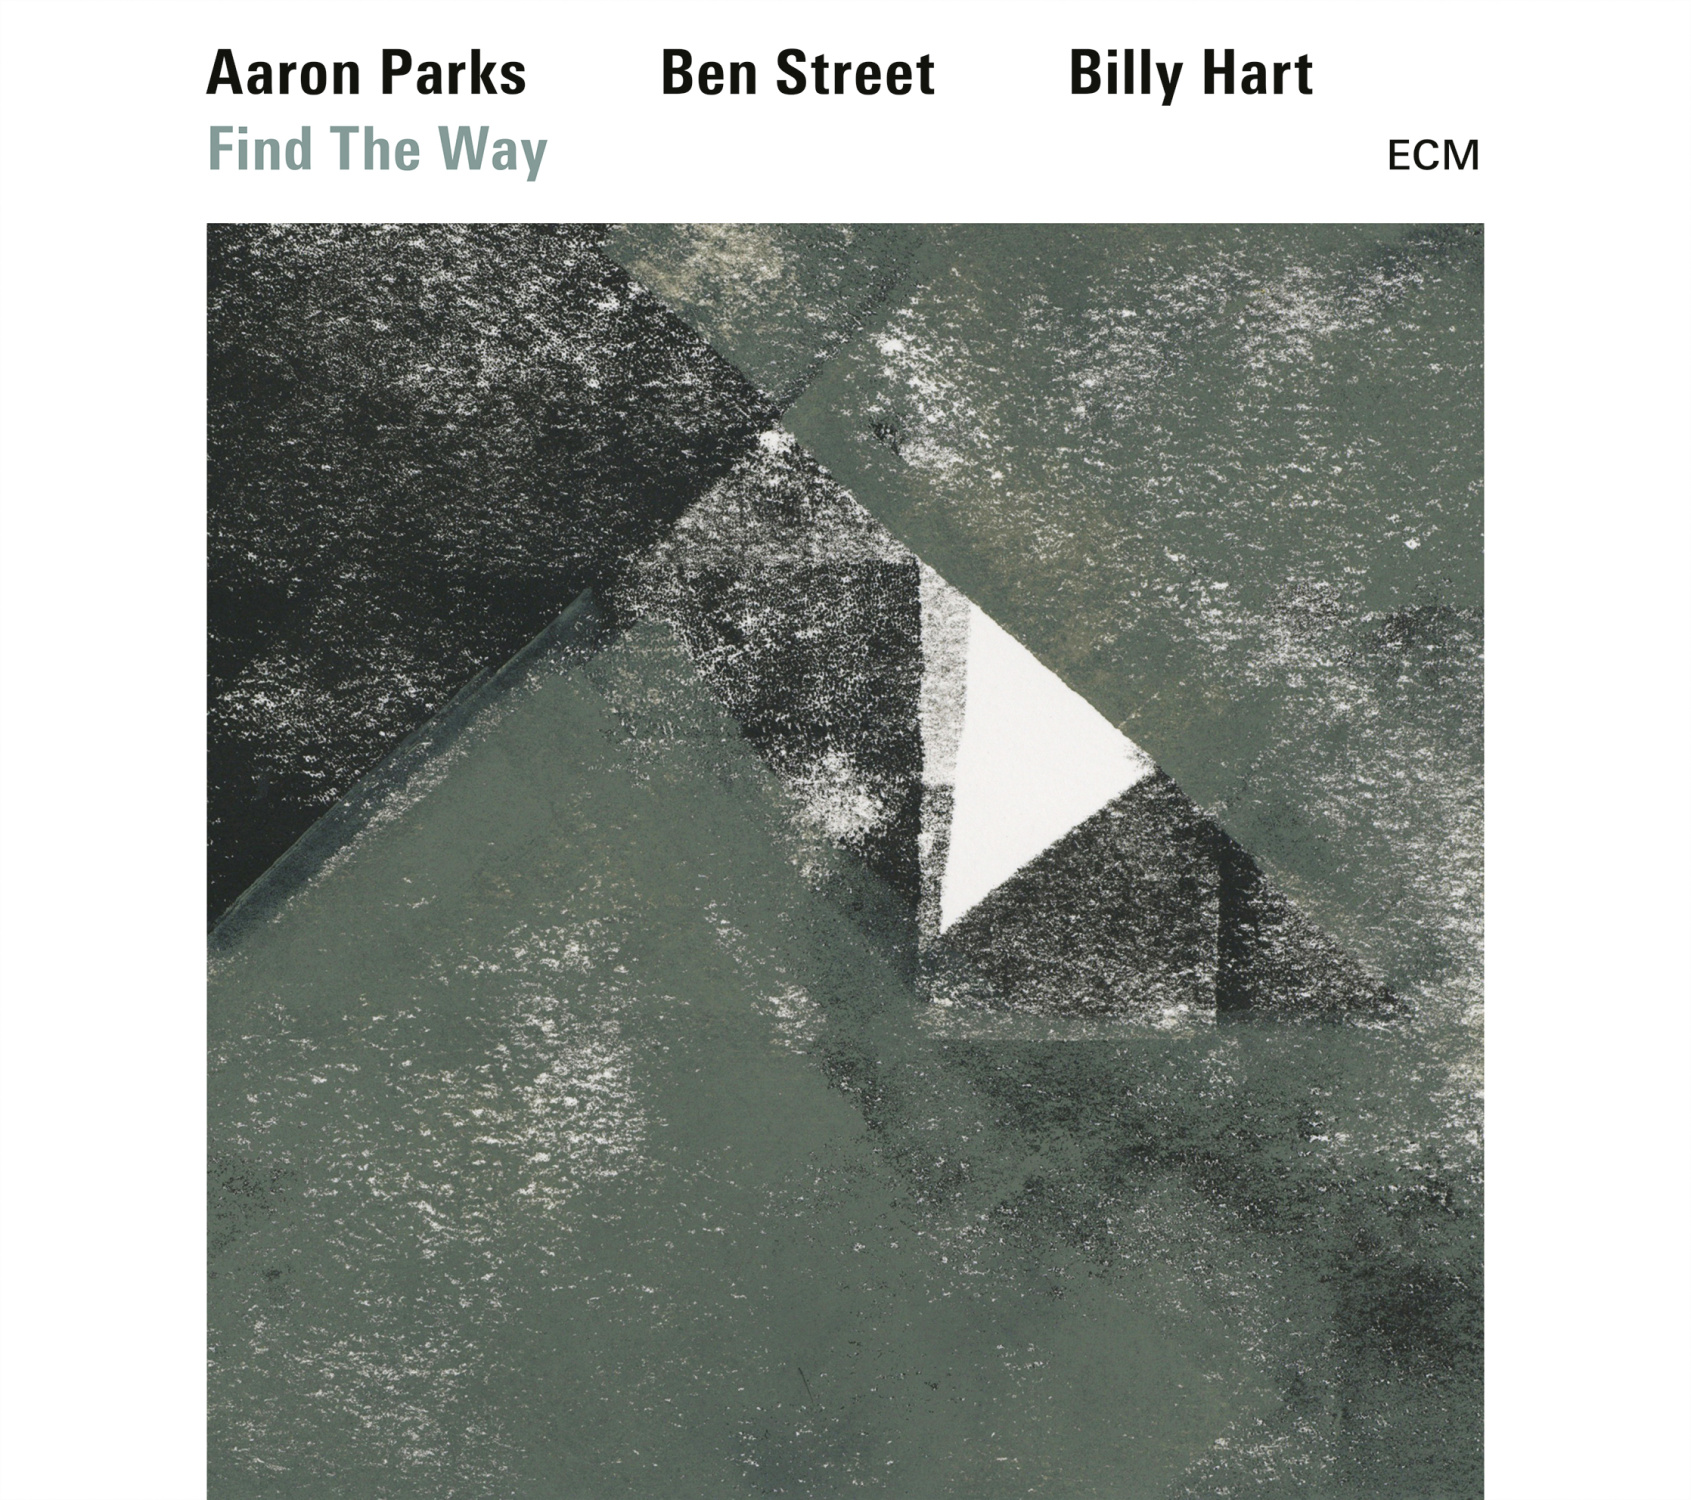 Aaron Parks – Find the Way (ECM, 2017)